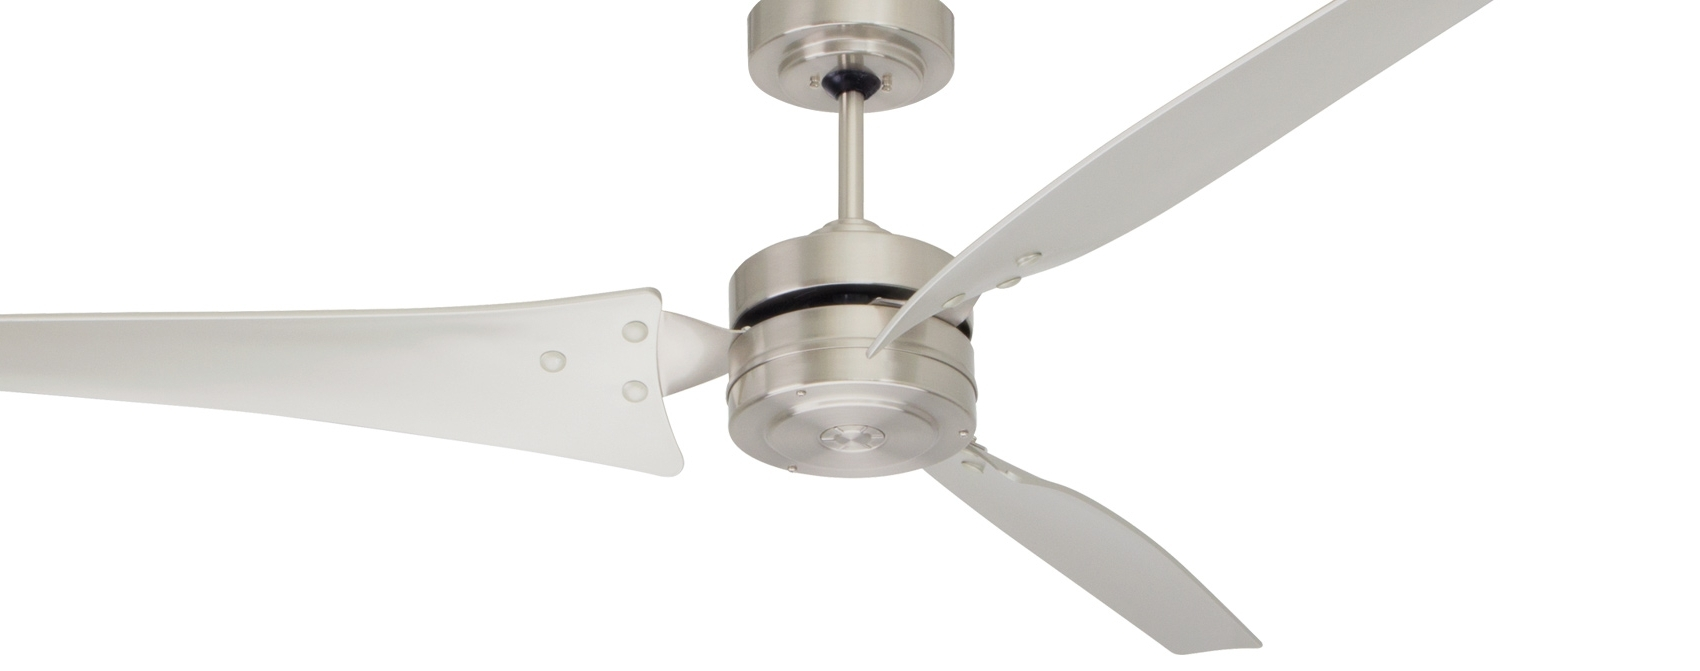 High Performance Intended For High End Outdoor Ceiling Fans (View 10 of 20)